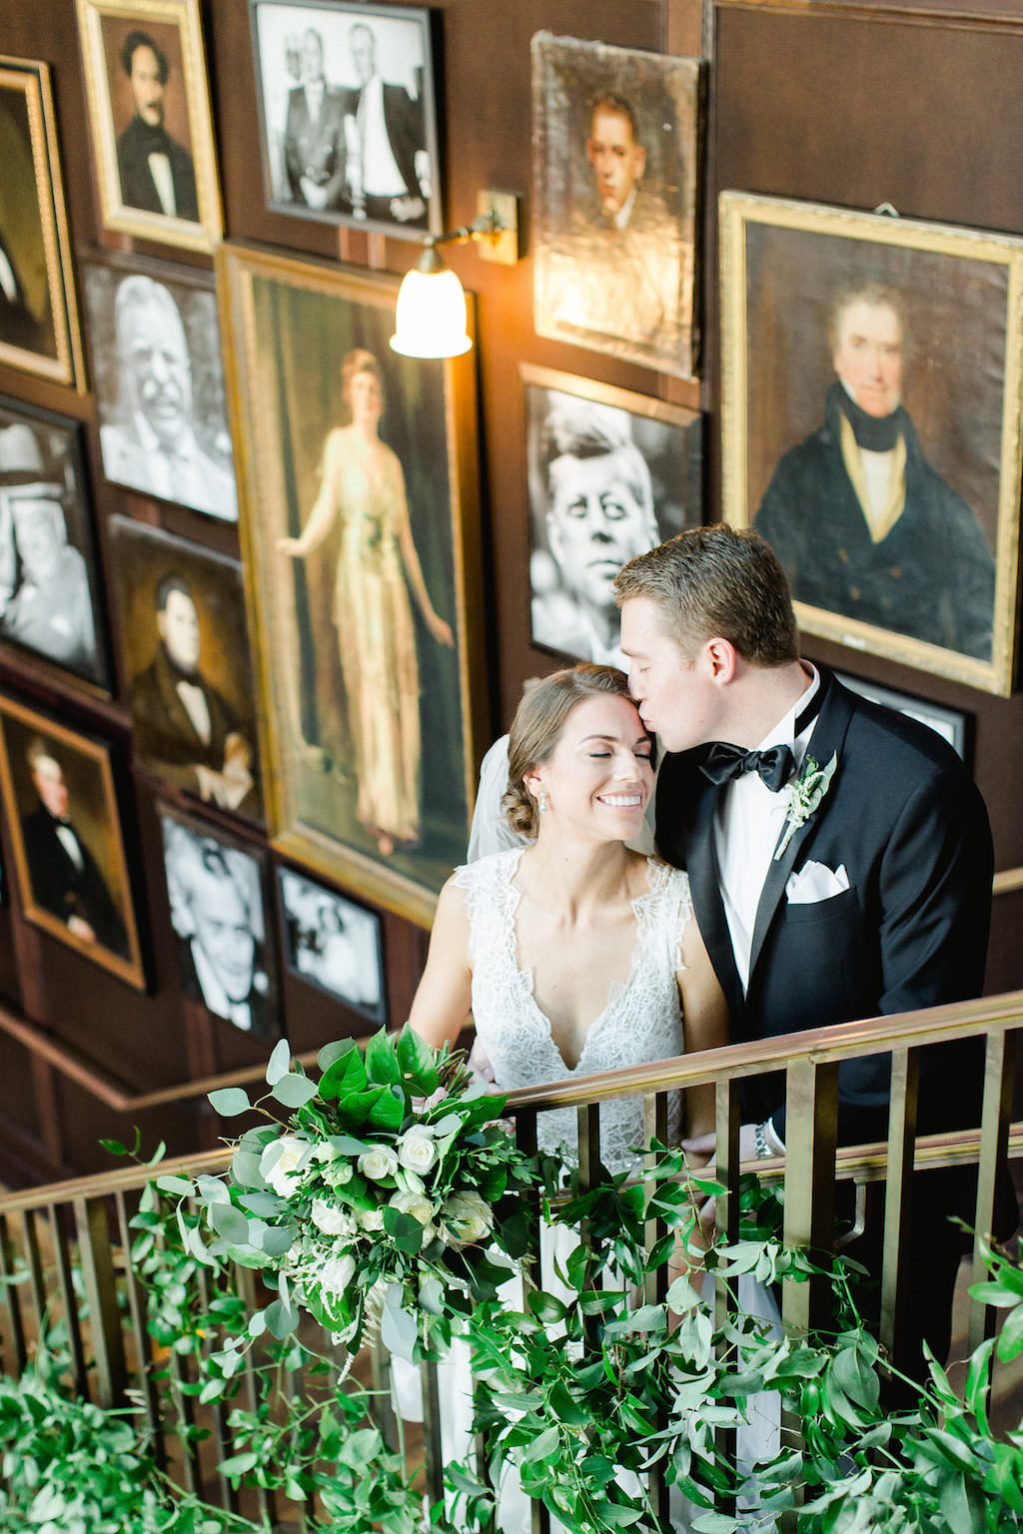 Indoor Wedding Portrait on Staircase with Greenery, Bride in V Neck Dress, Groom in Black Tuxedo | Tampa Wedding Photographer Ailyn La Torre Photography | Downtown Historic Venue The Oxford Exchange